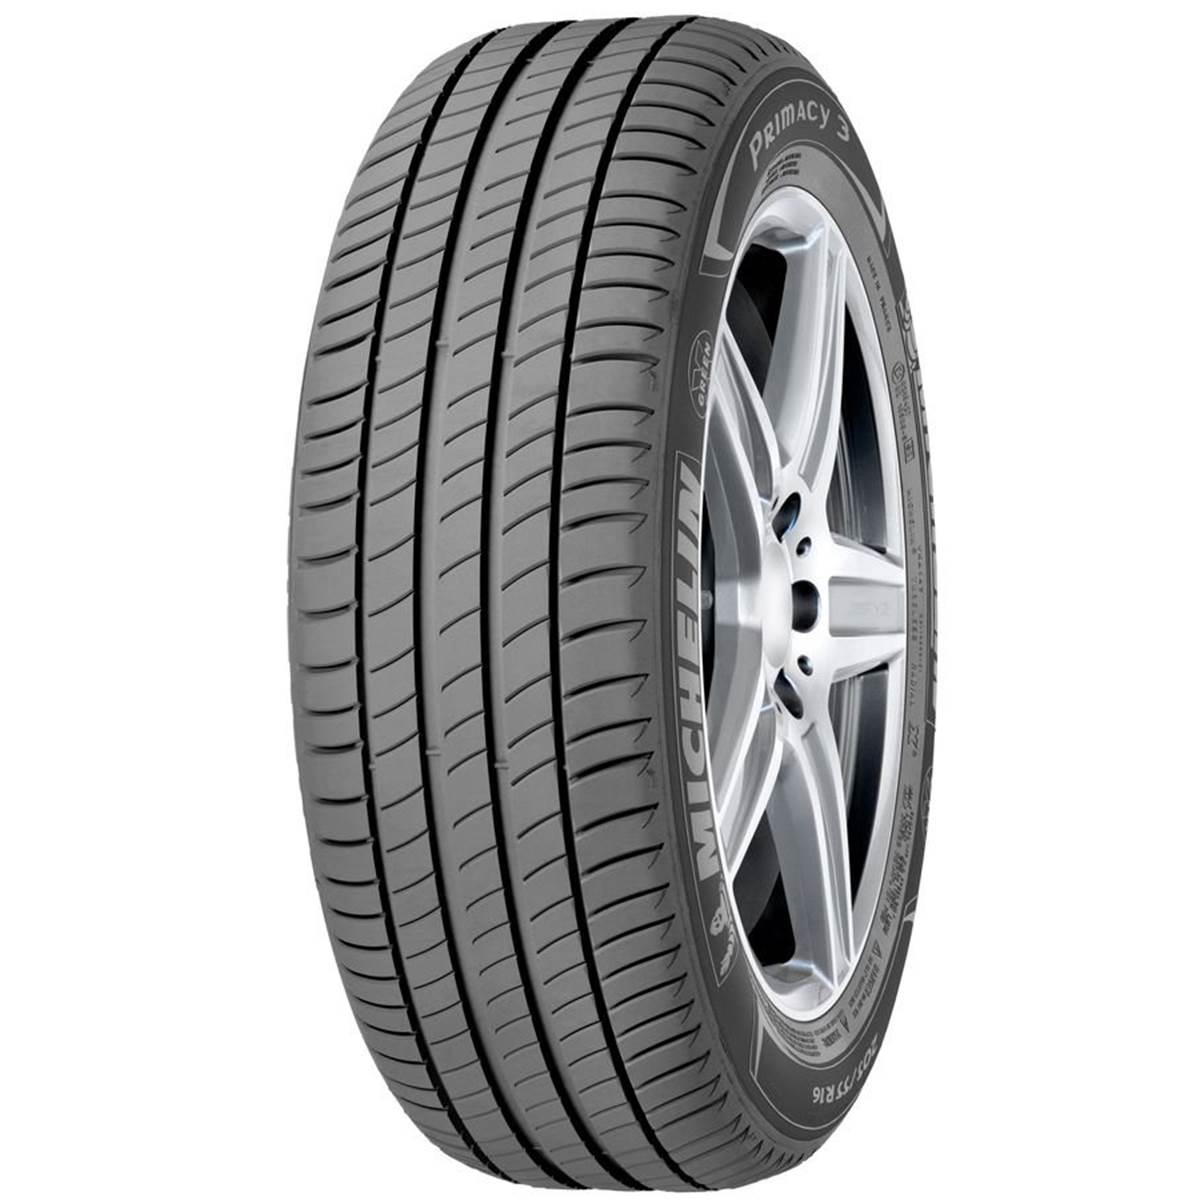 Pneu Michelin 205/50R17 89V Primacy 3